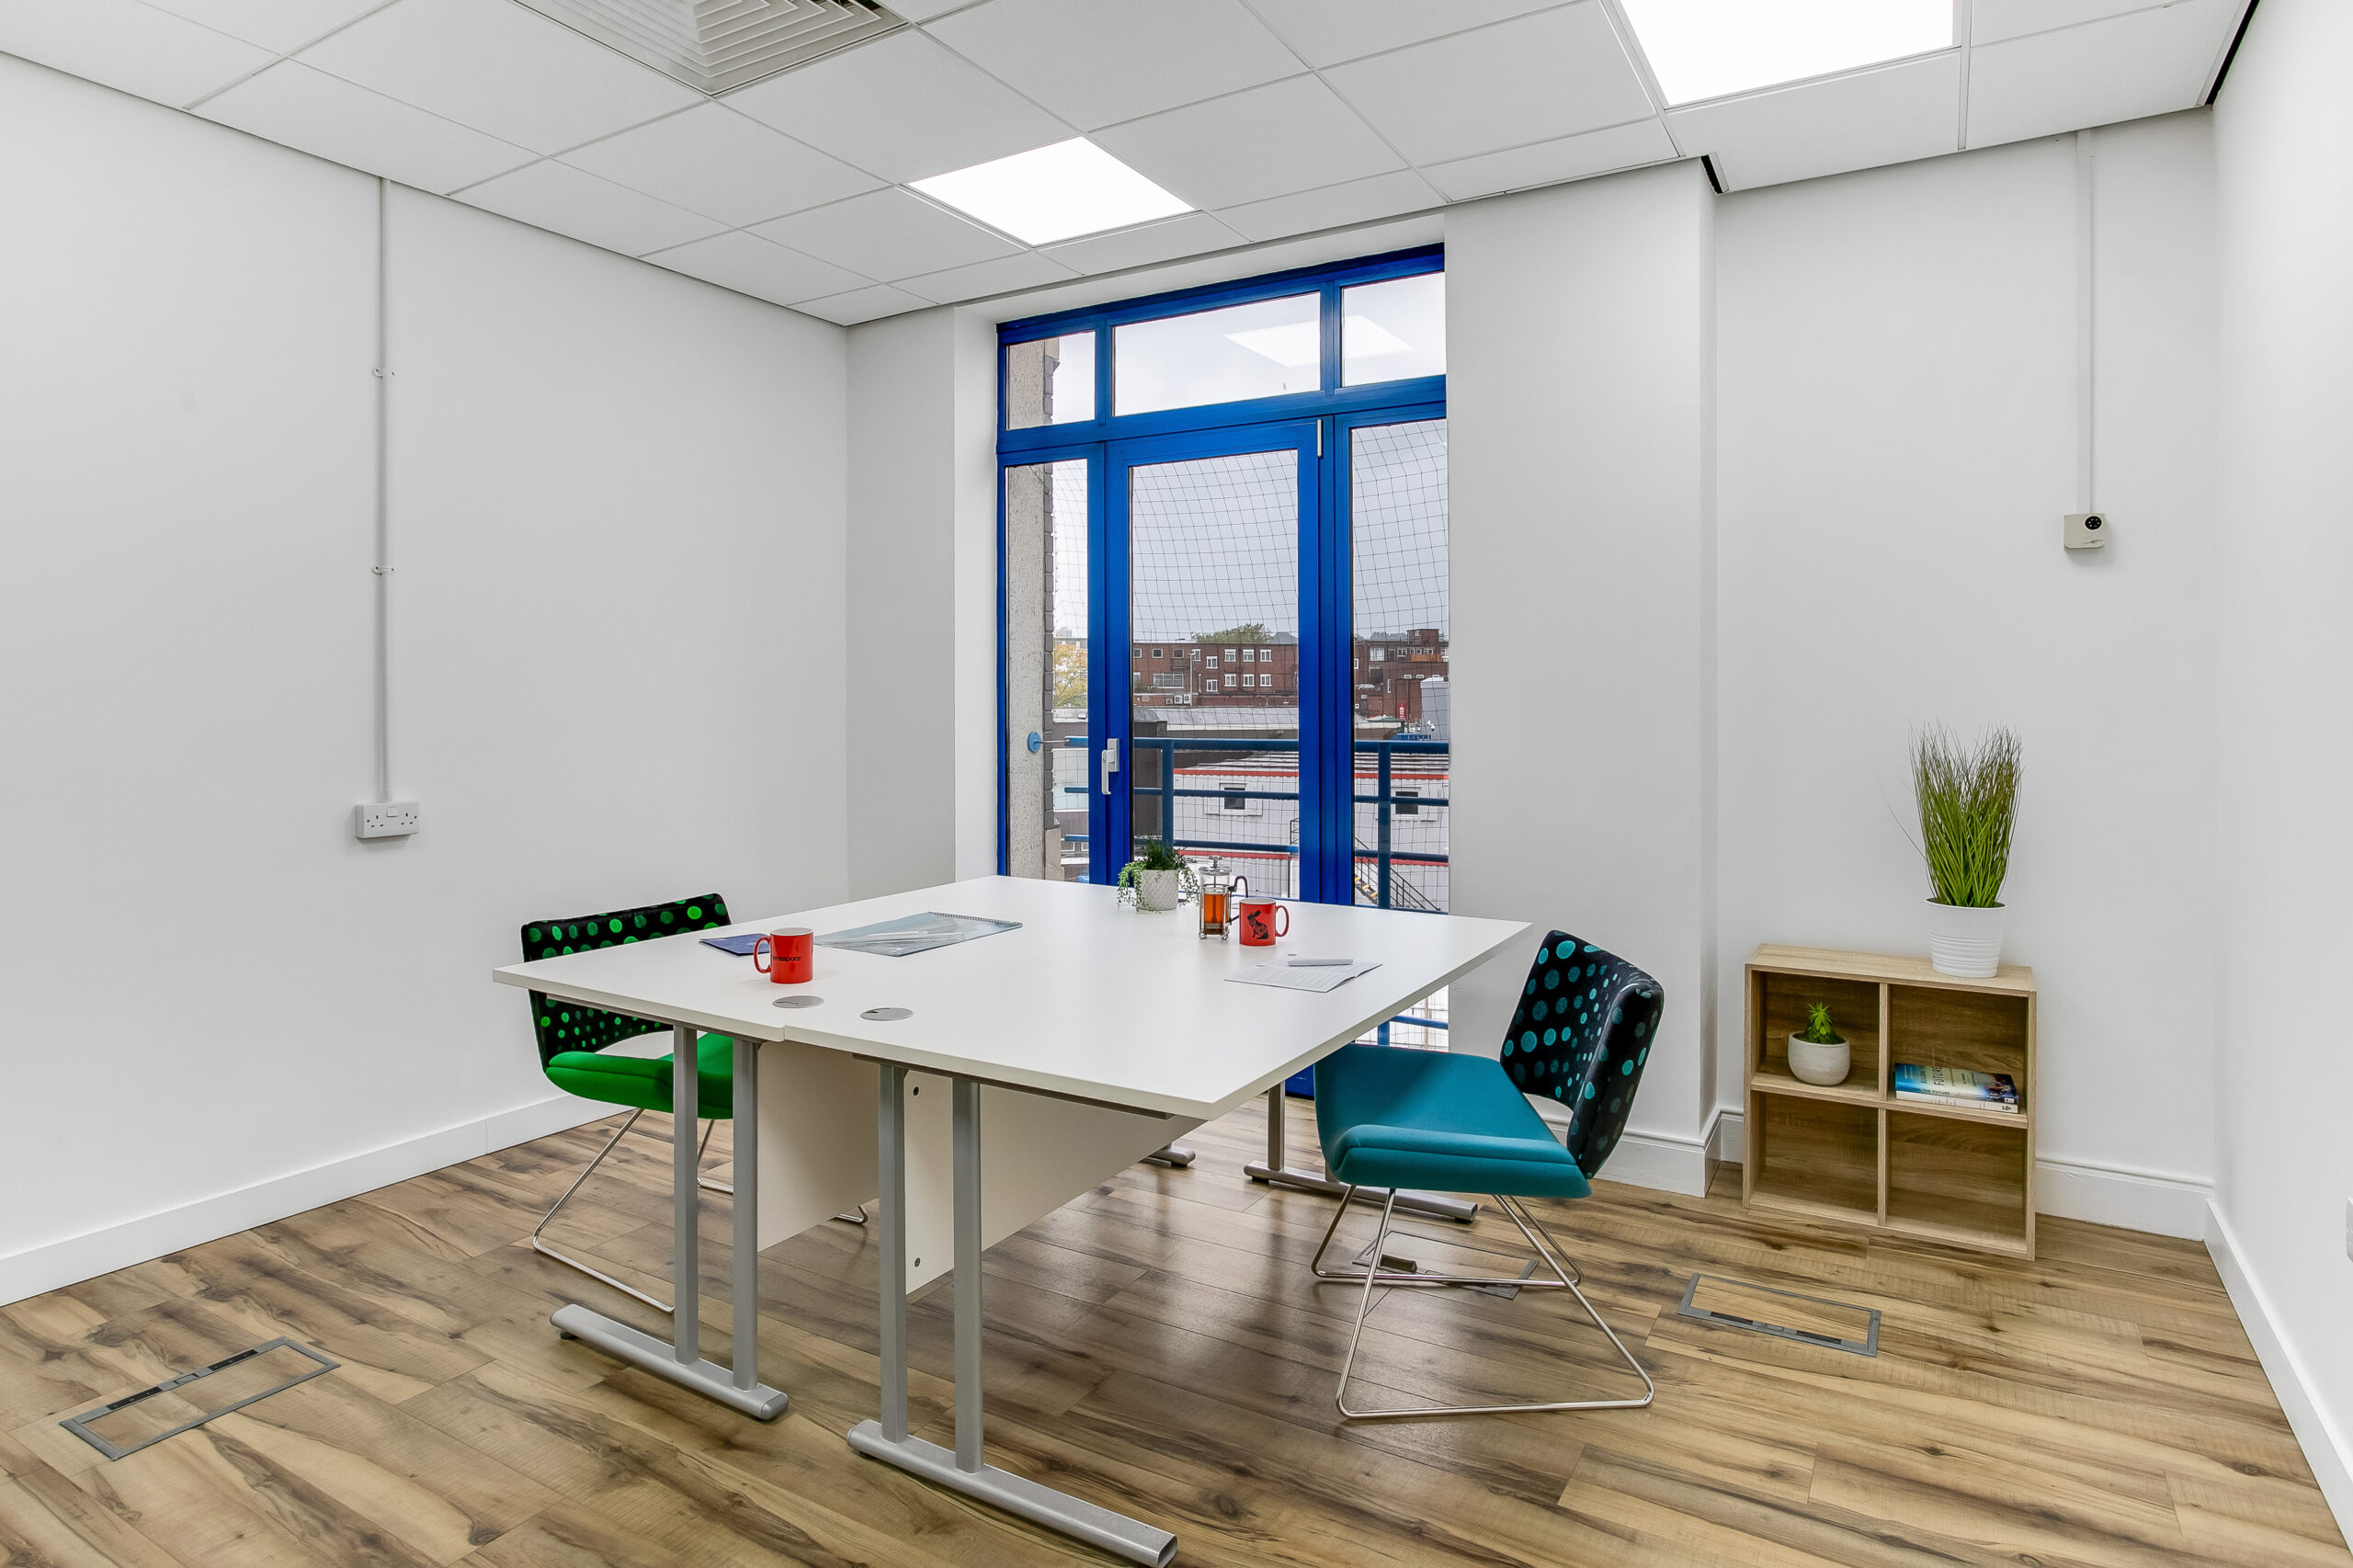 Office space Bournemouth, Virtual office, Coworking Bournemouth, Meeting rooms Bournemouth, Meeting rooms Exeter